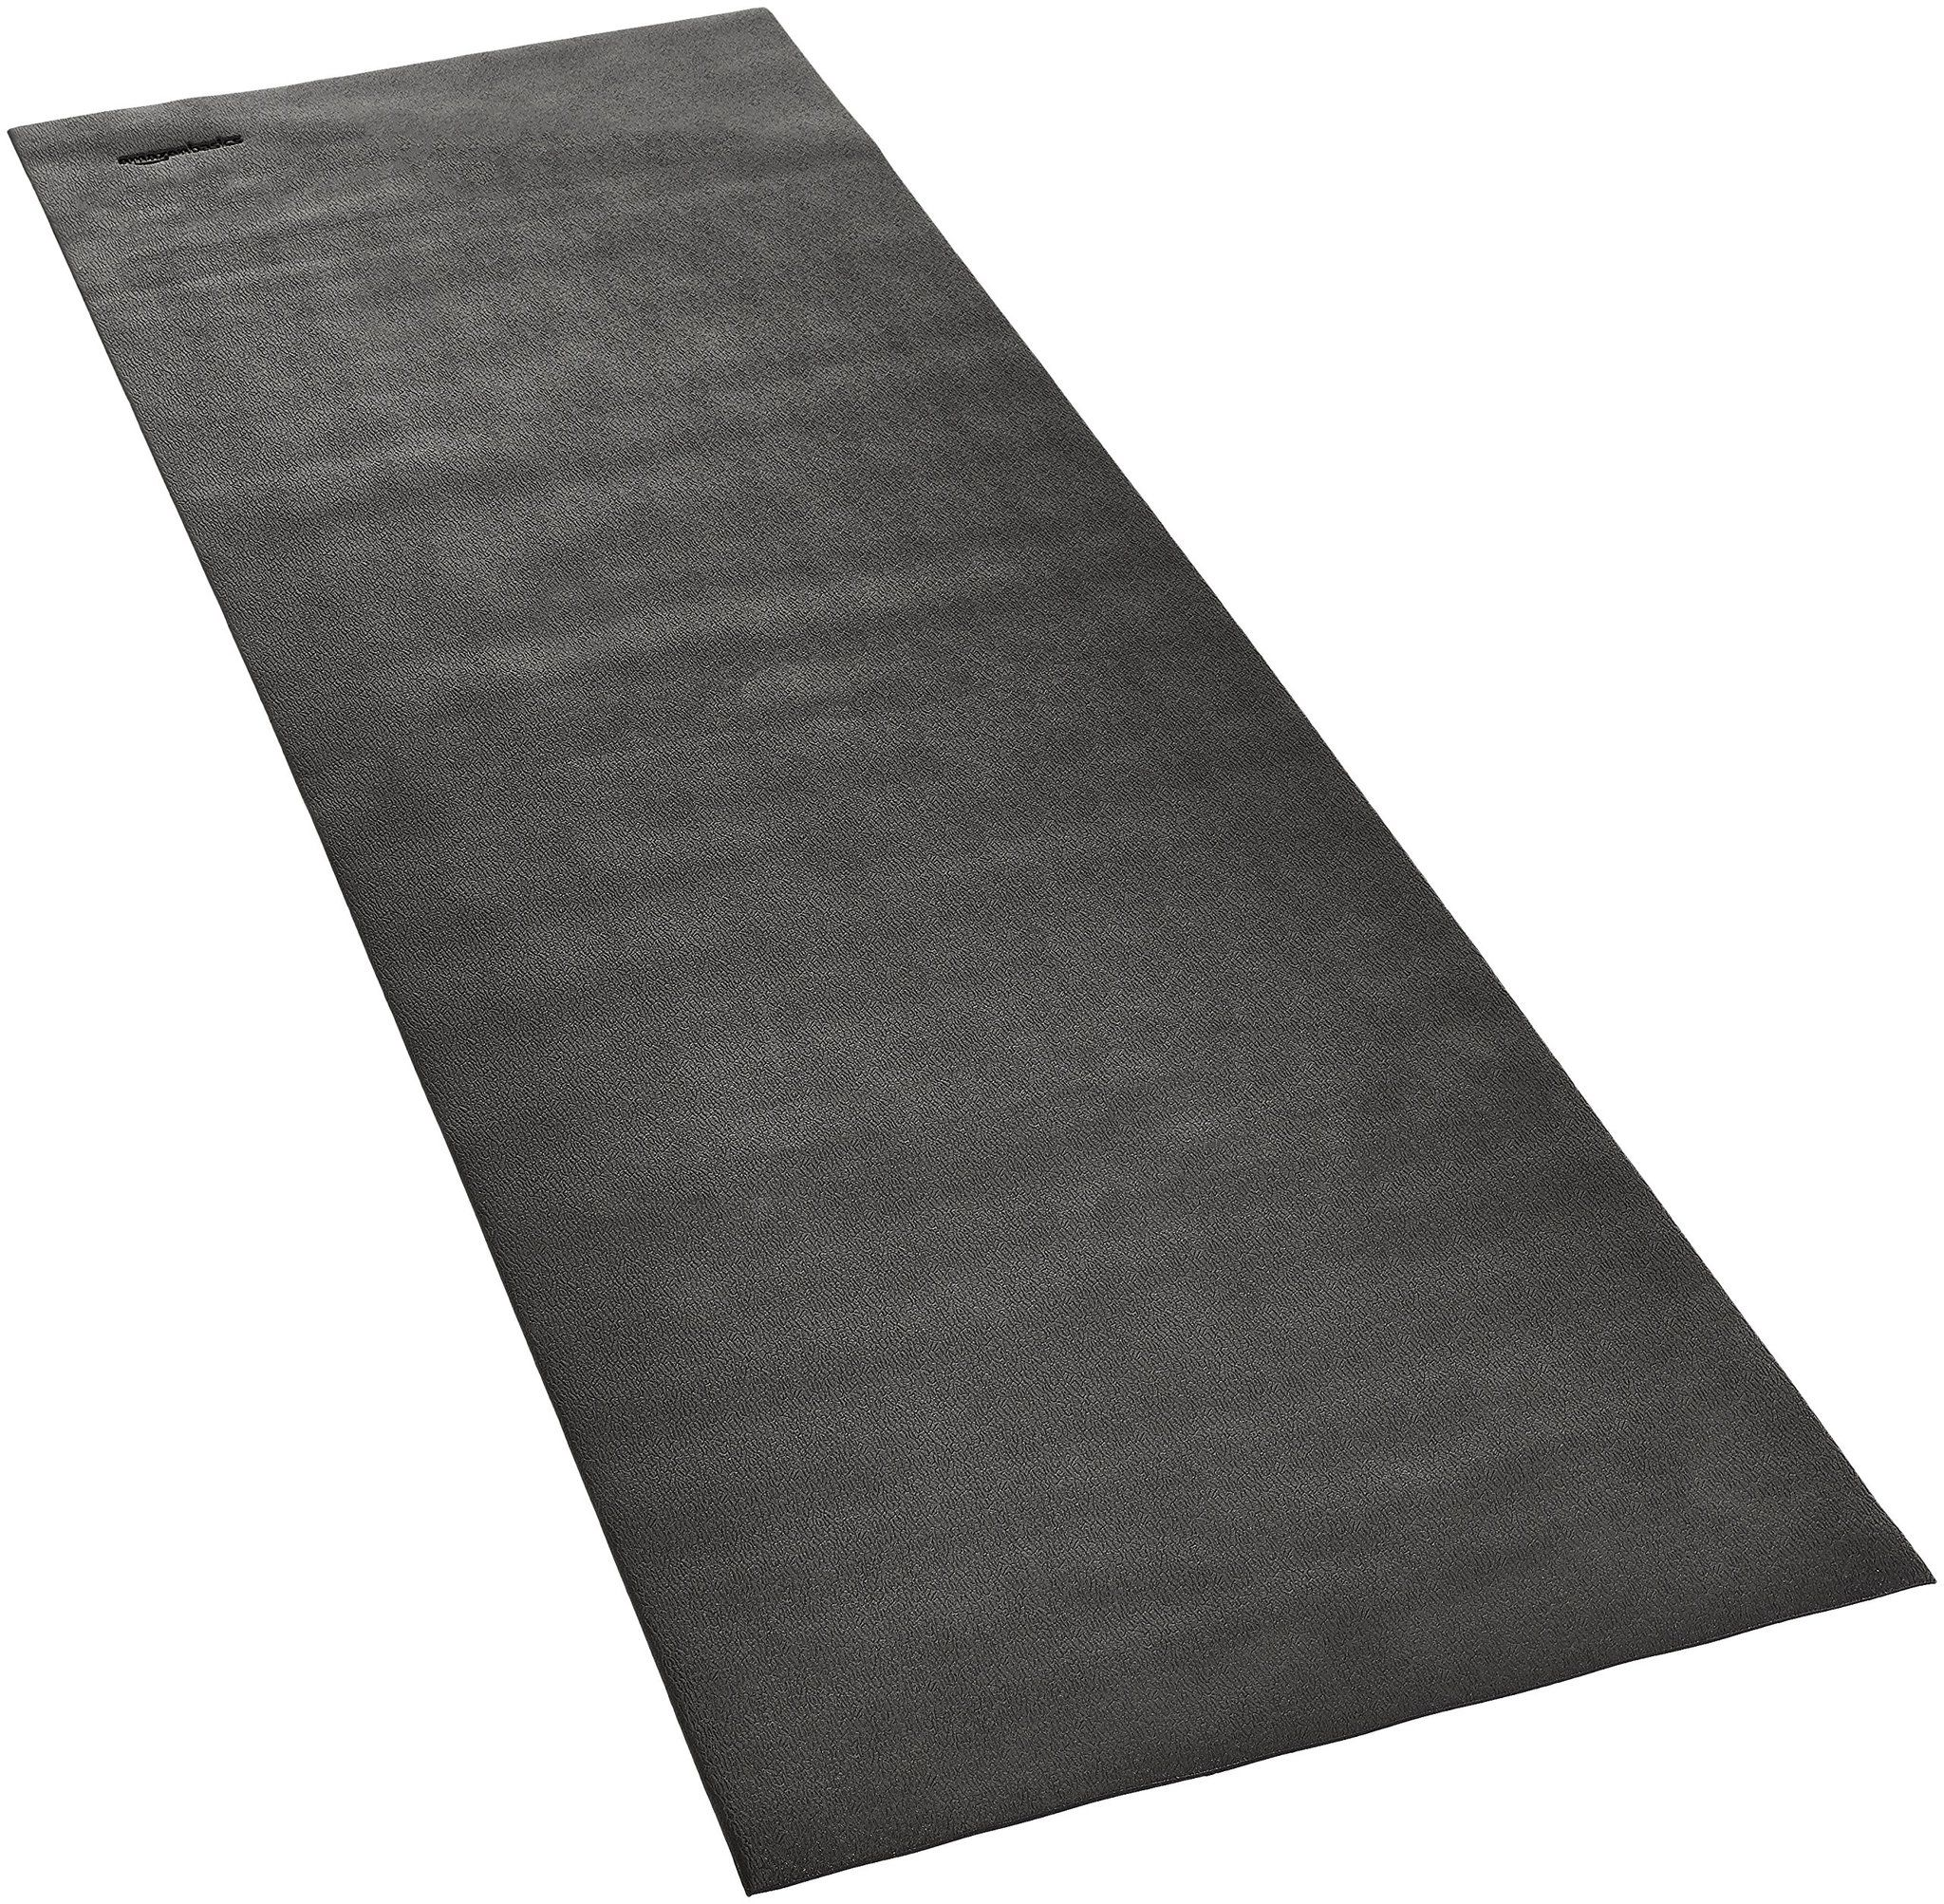 3 By 8 5 Foot Mat Made Of High Density Pvc Ideal For Placing Under A Home Gym Rowing Machine Or An Exercise Treadmill Mat No Equipment Workout Biking Workout